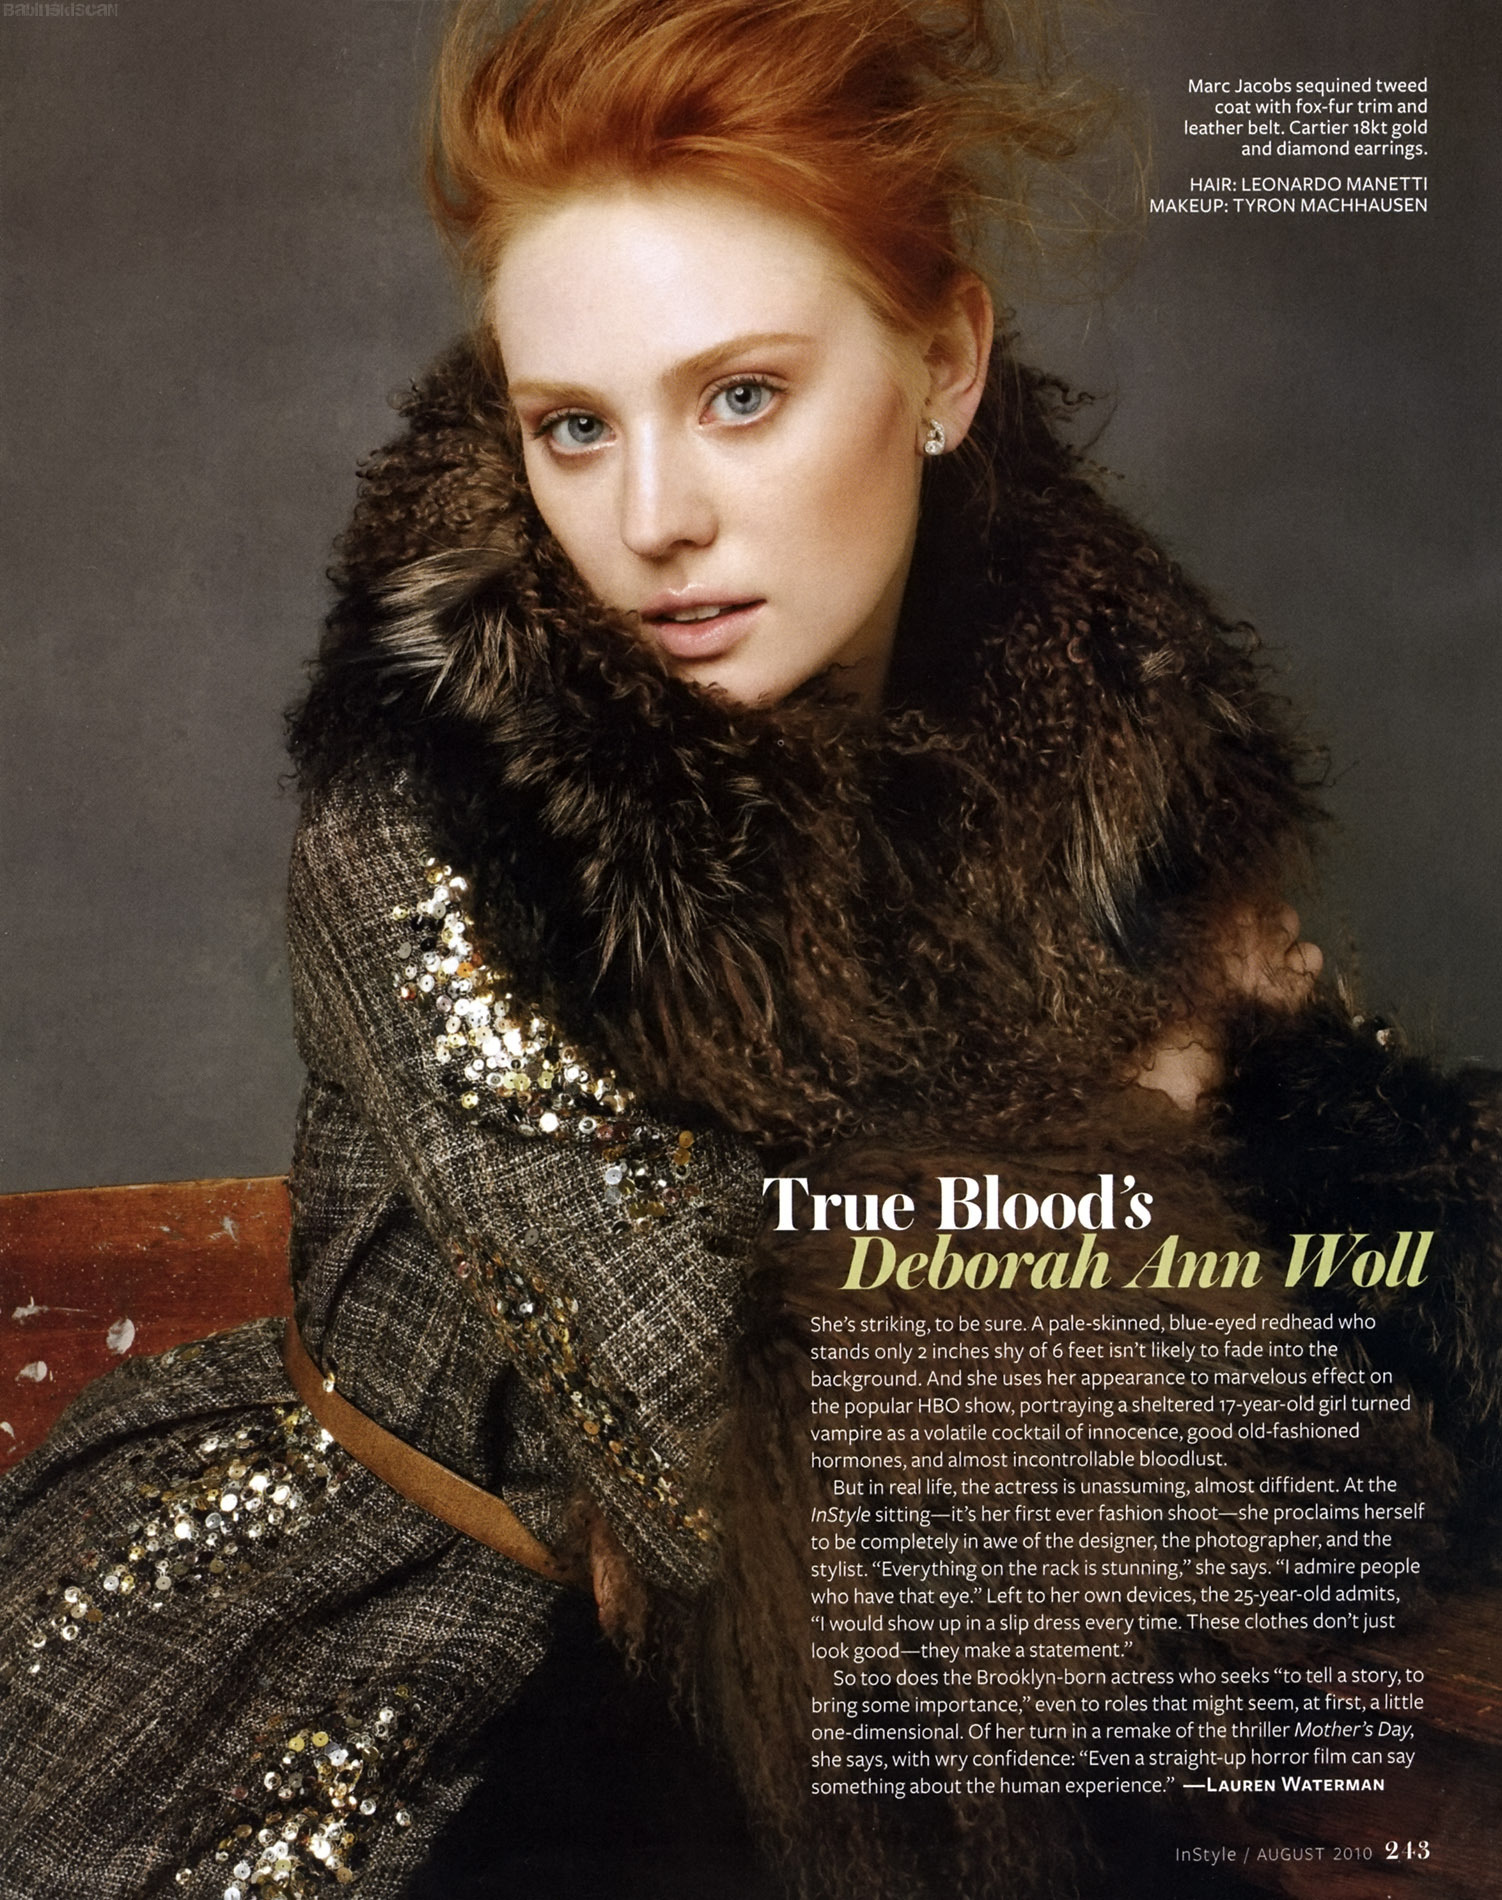 Instyle (August 2010)